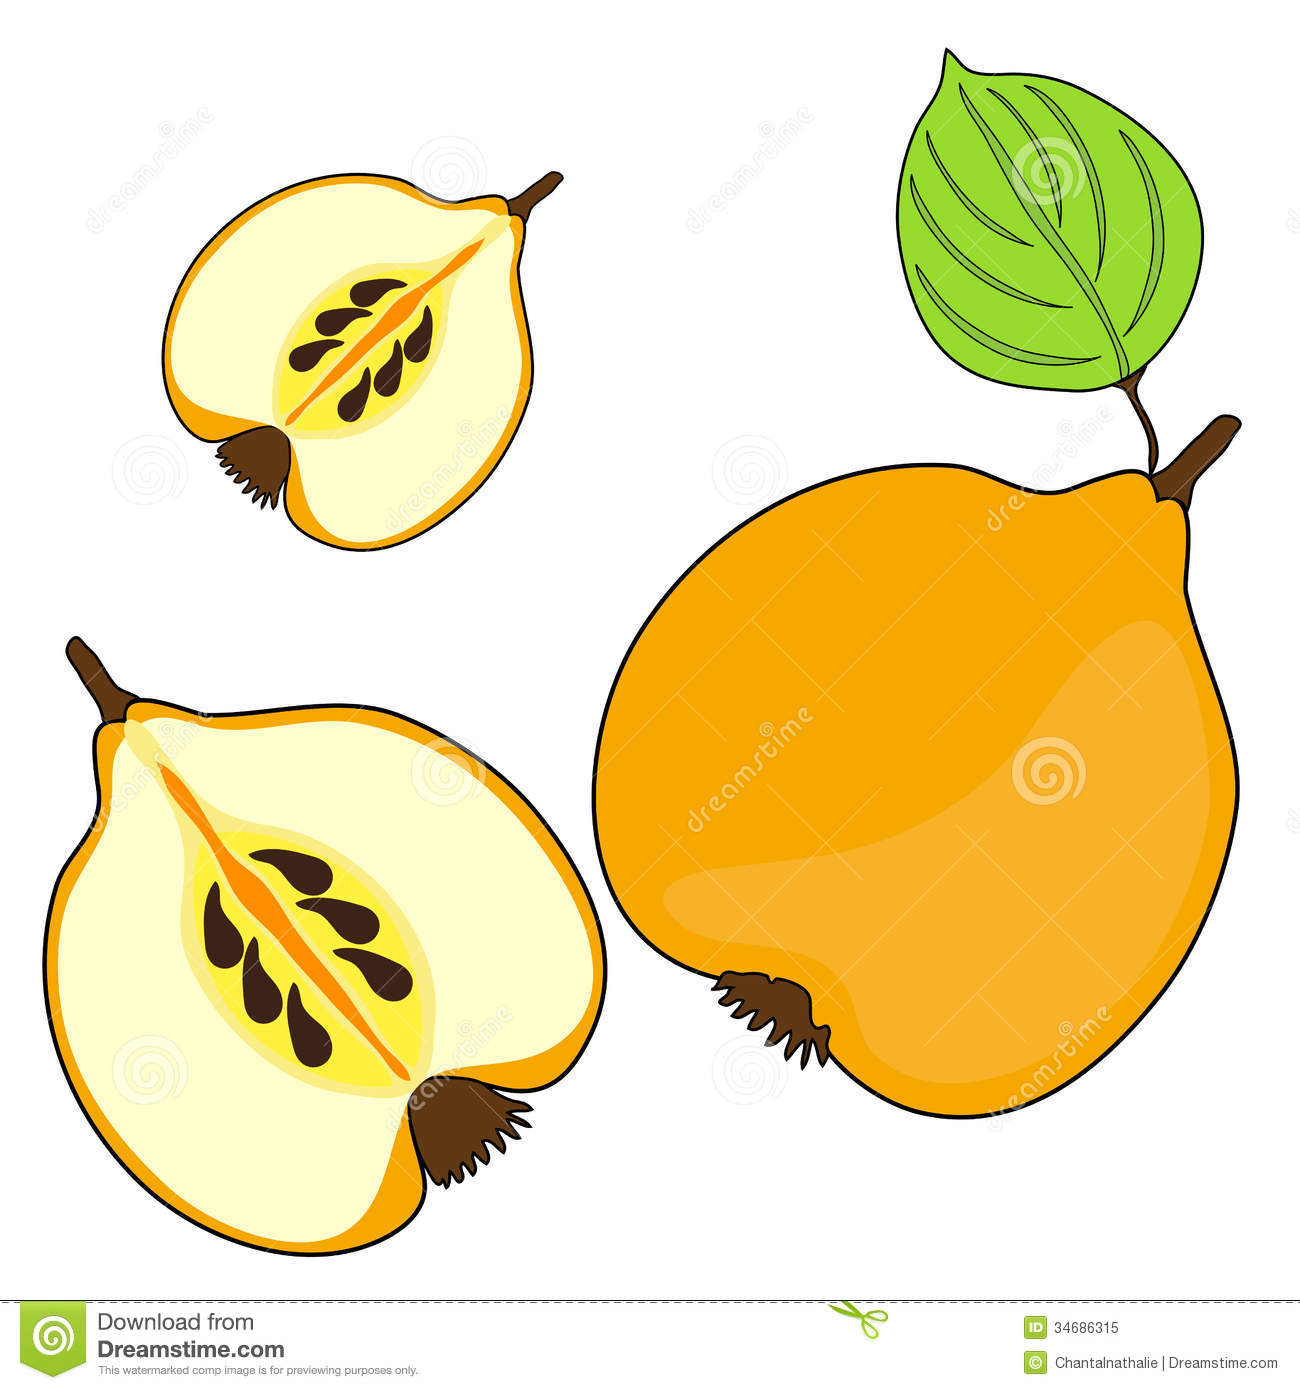 Quince Cartoon Stock Photos, Images, & Pictures.